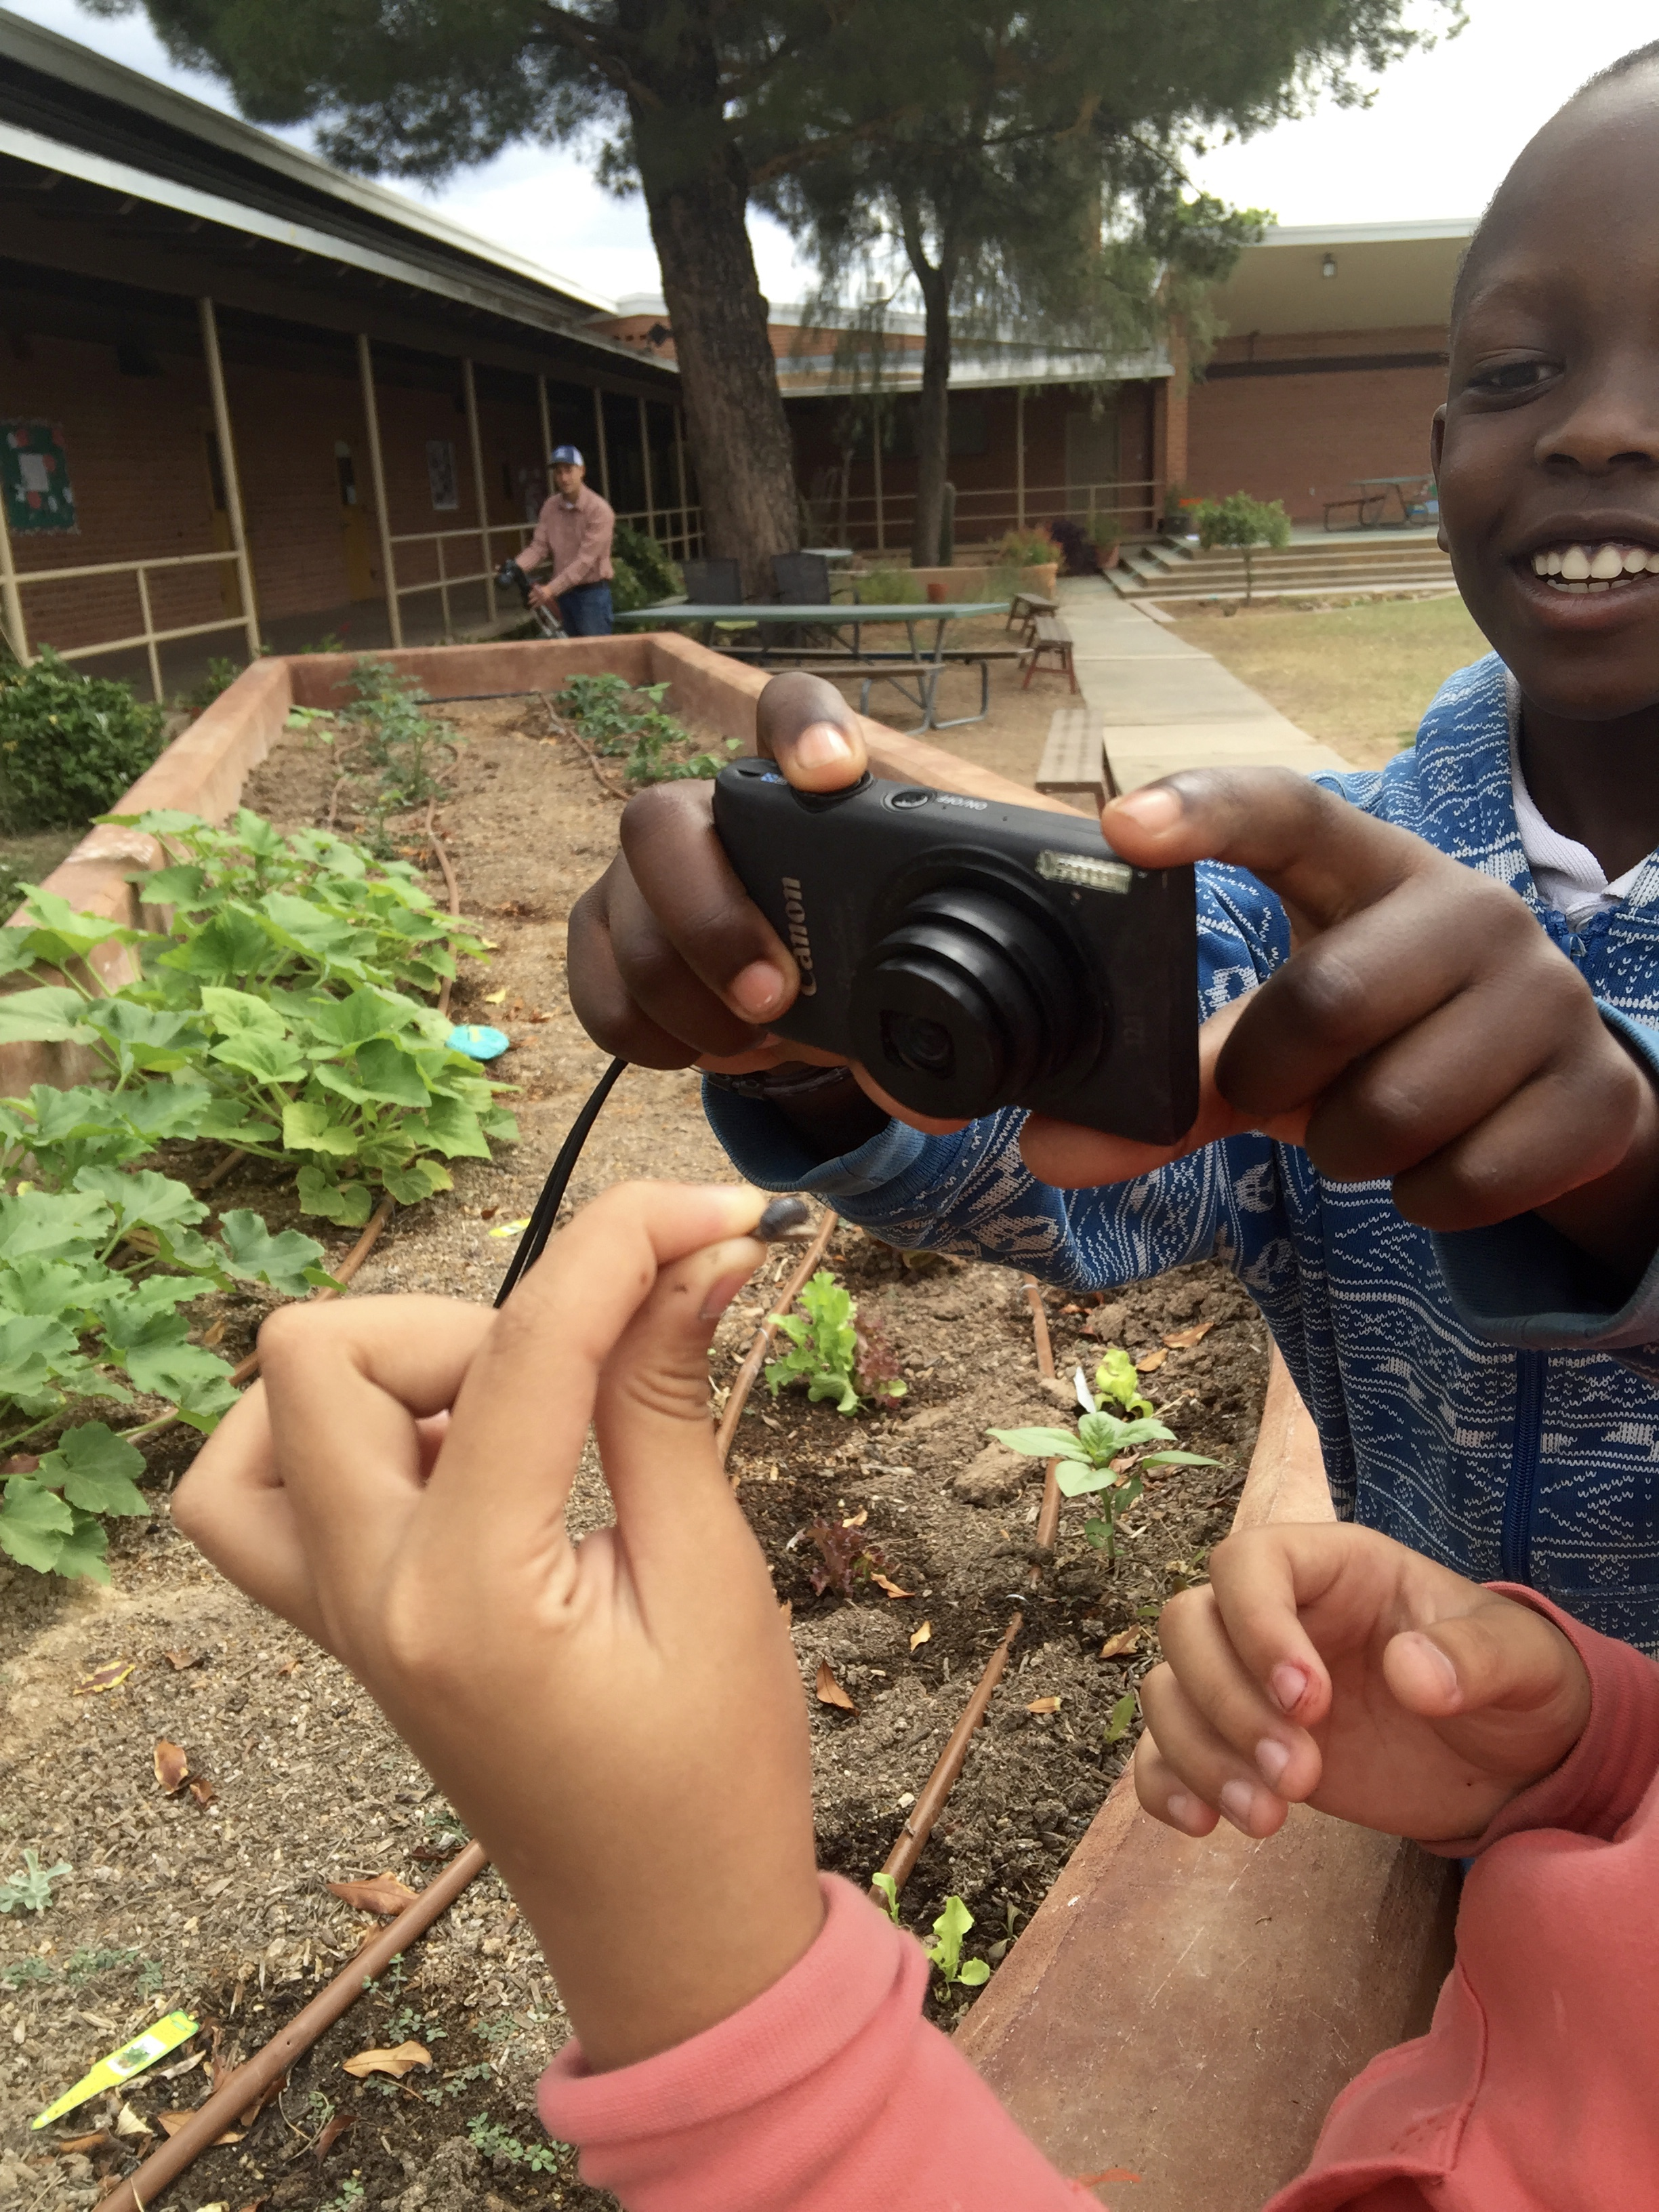 Image of a elementary-aged student taking a photo of a worm that another young student is holding